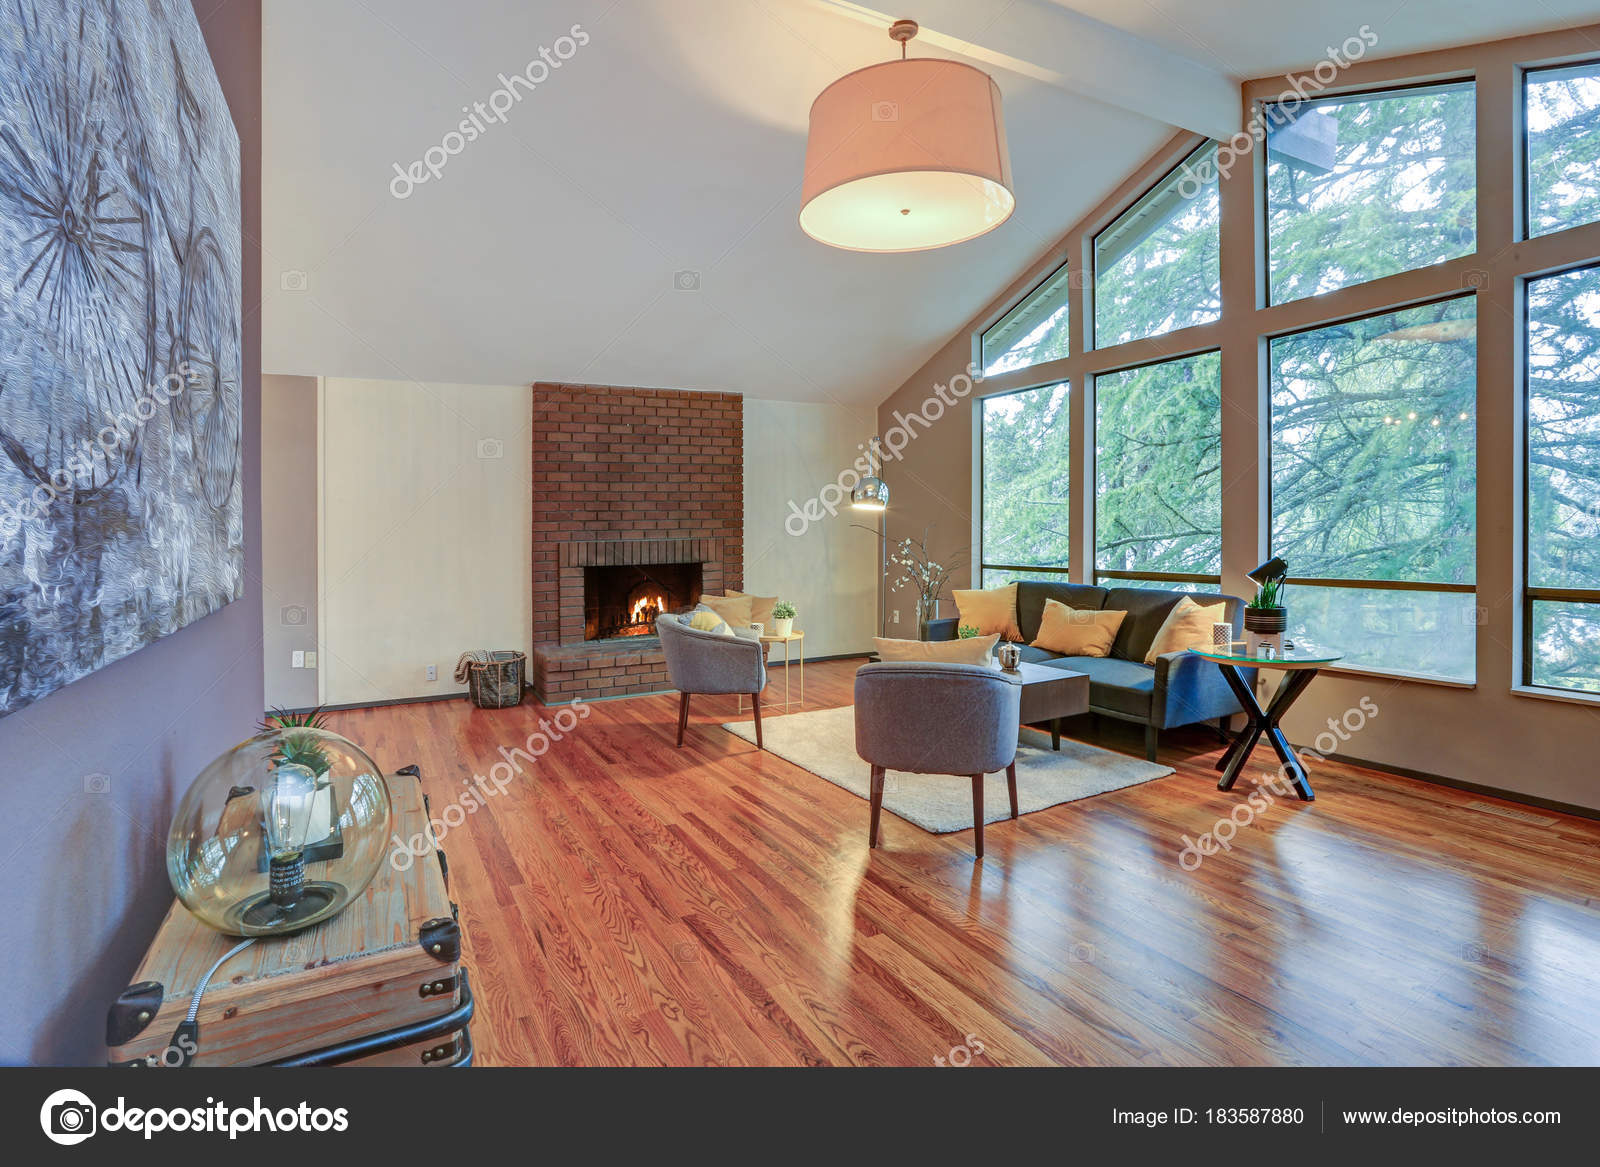 Lovely Spacious Open Floor Plan With Vaulted Ceiling And Tan Walls Features Living Room Window Wall Brick Fireplace Polished Hardwood